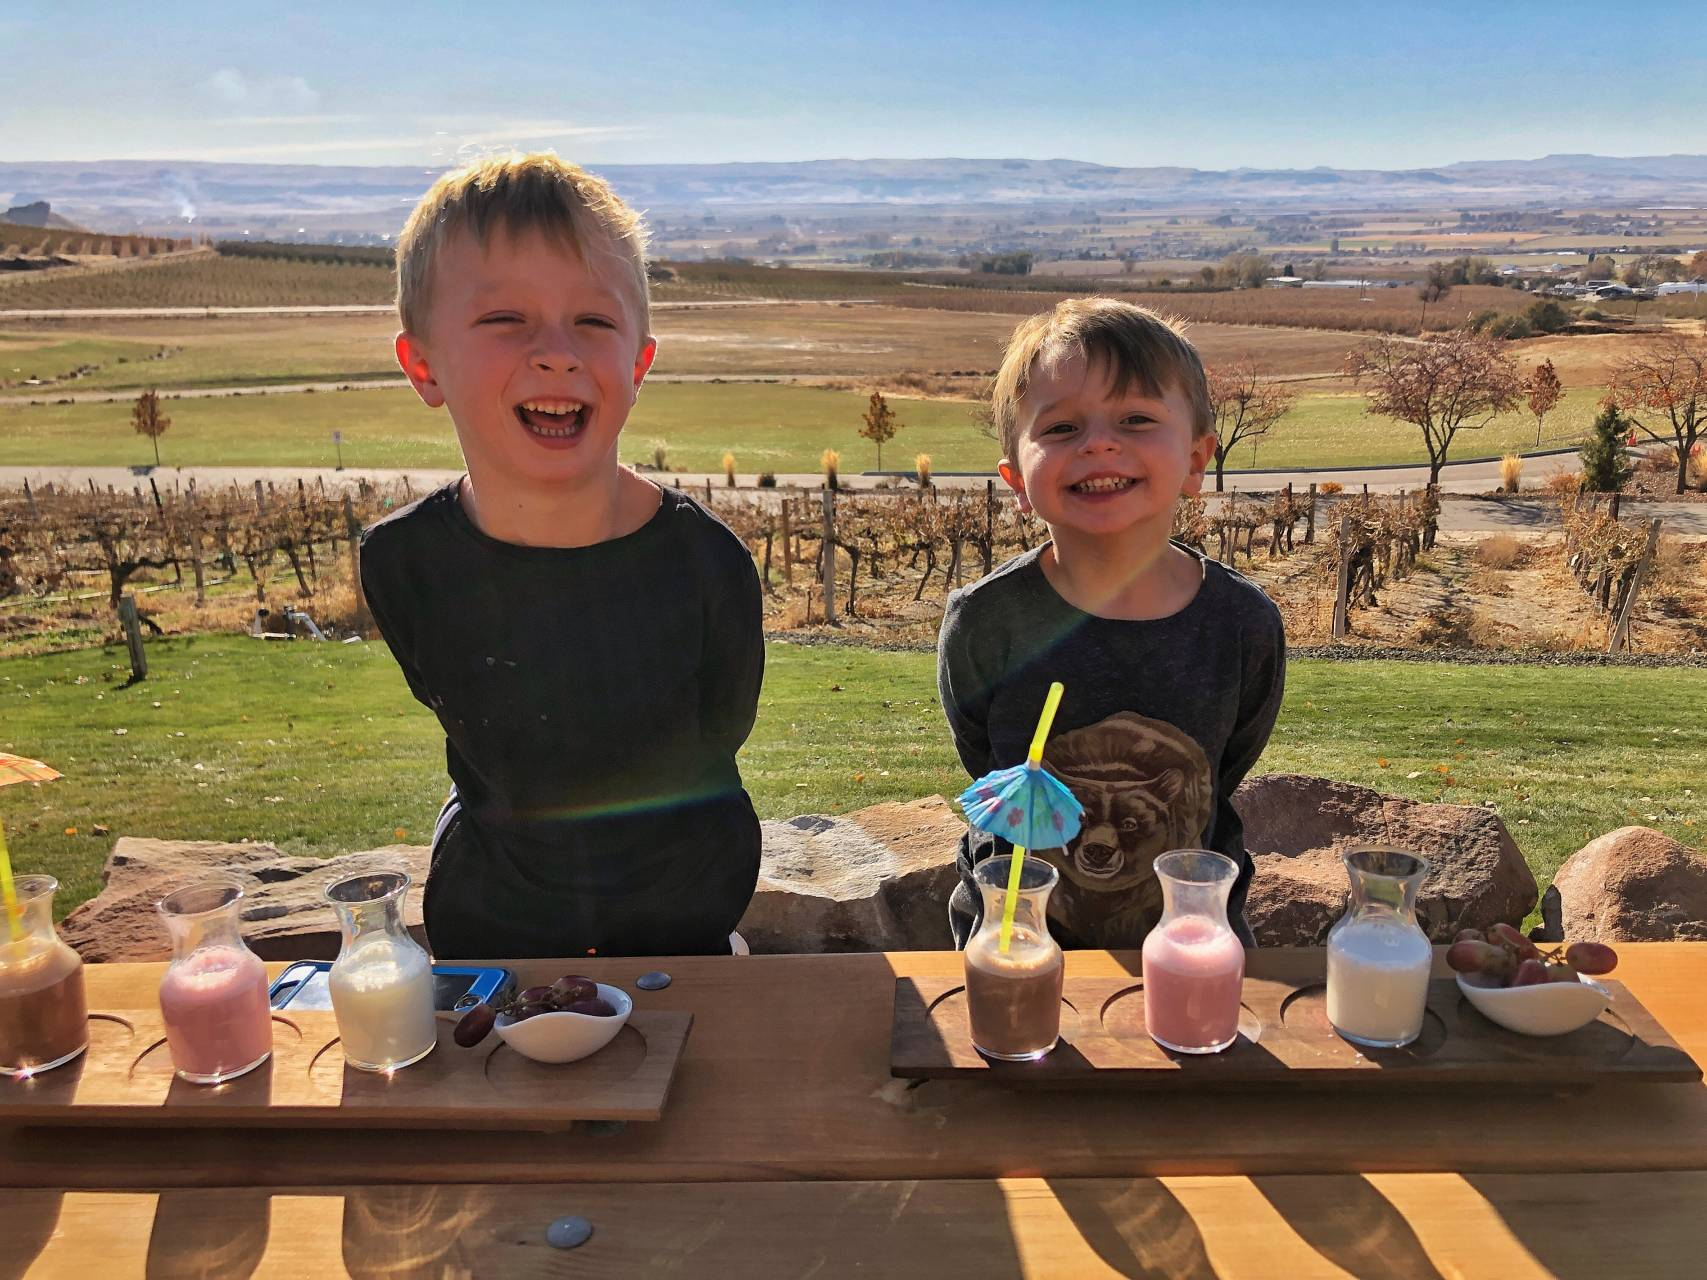 Ste. Chapelle Winery has milk flights for the kids, making it a great stop when visiting Boise!